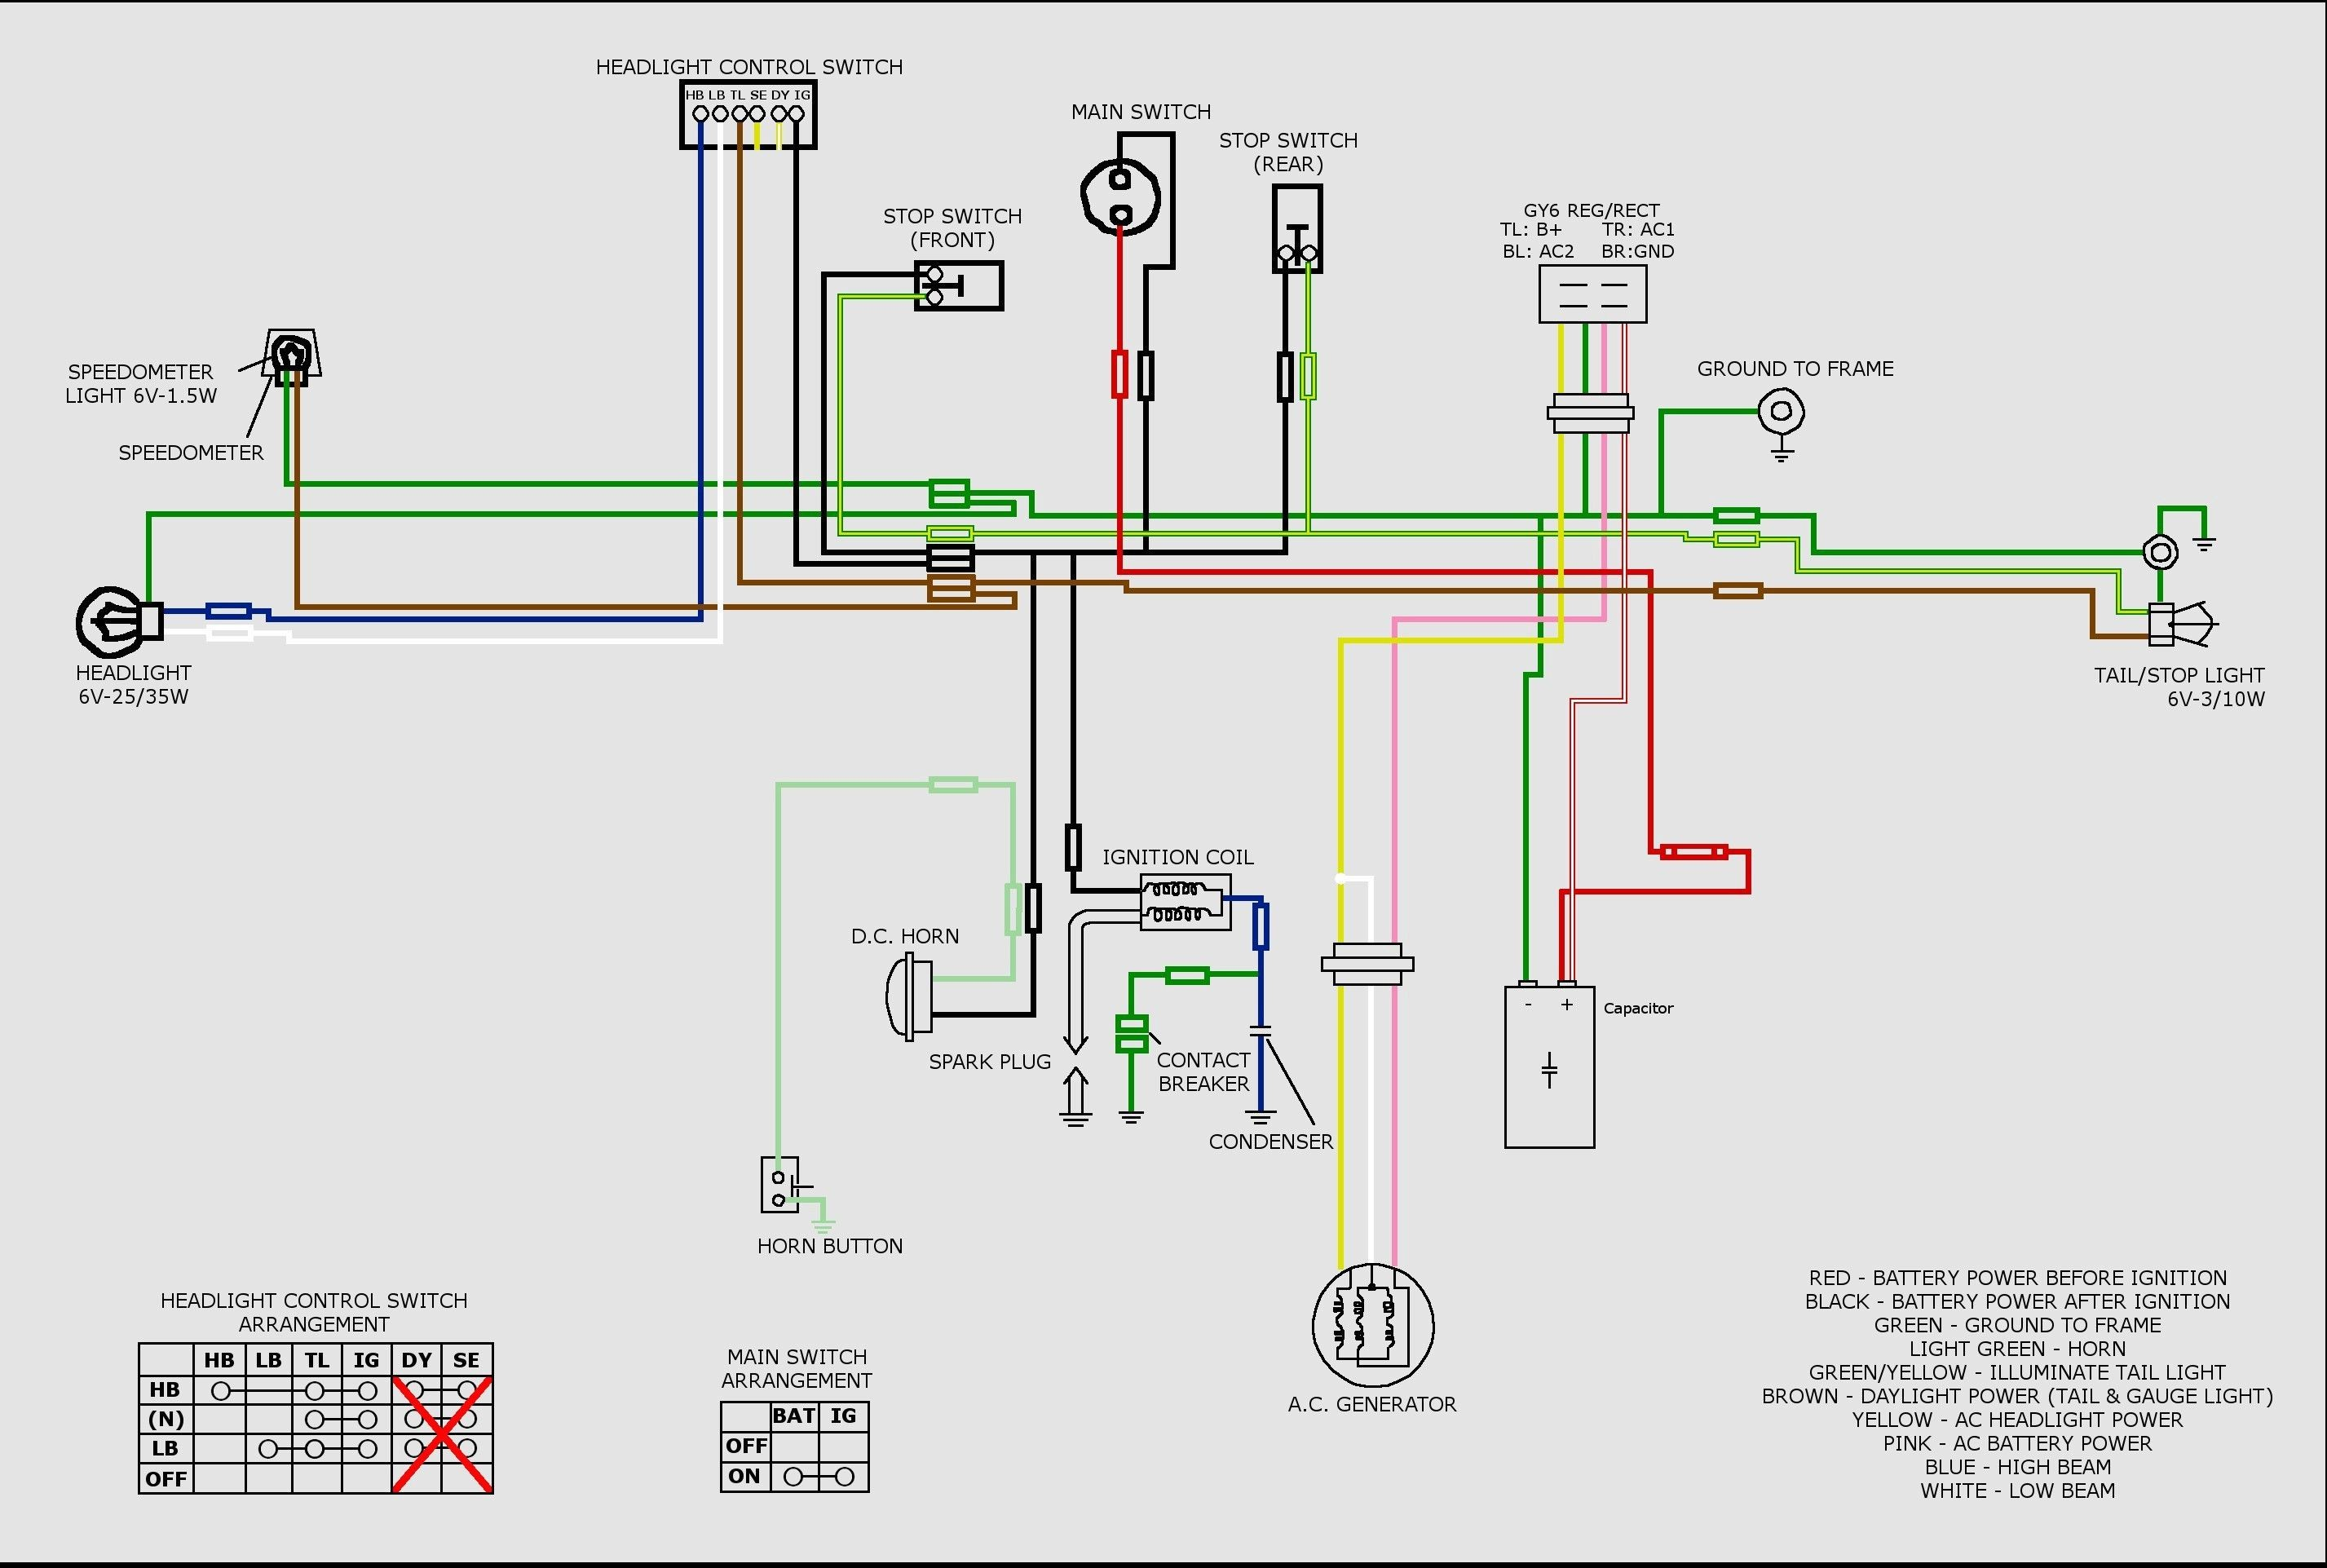 Wiring Schematic with Arduino A9ccc4 Ecobee Wiring Diagram 3 Of Wiring Schematic with Arduino